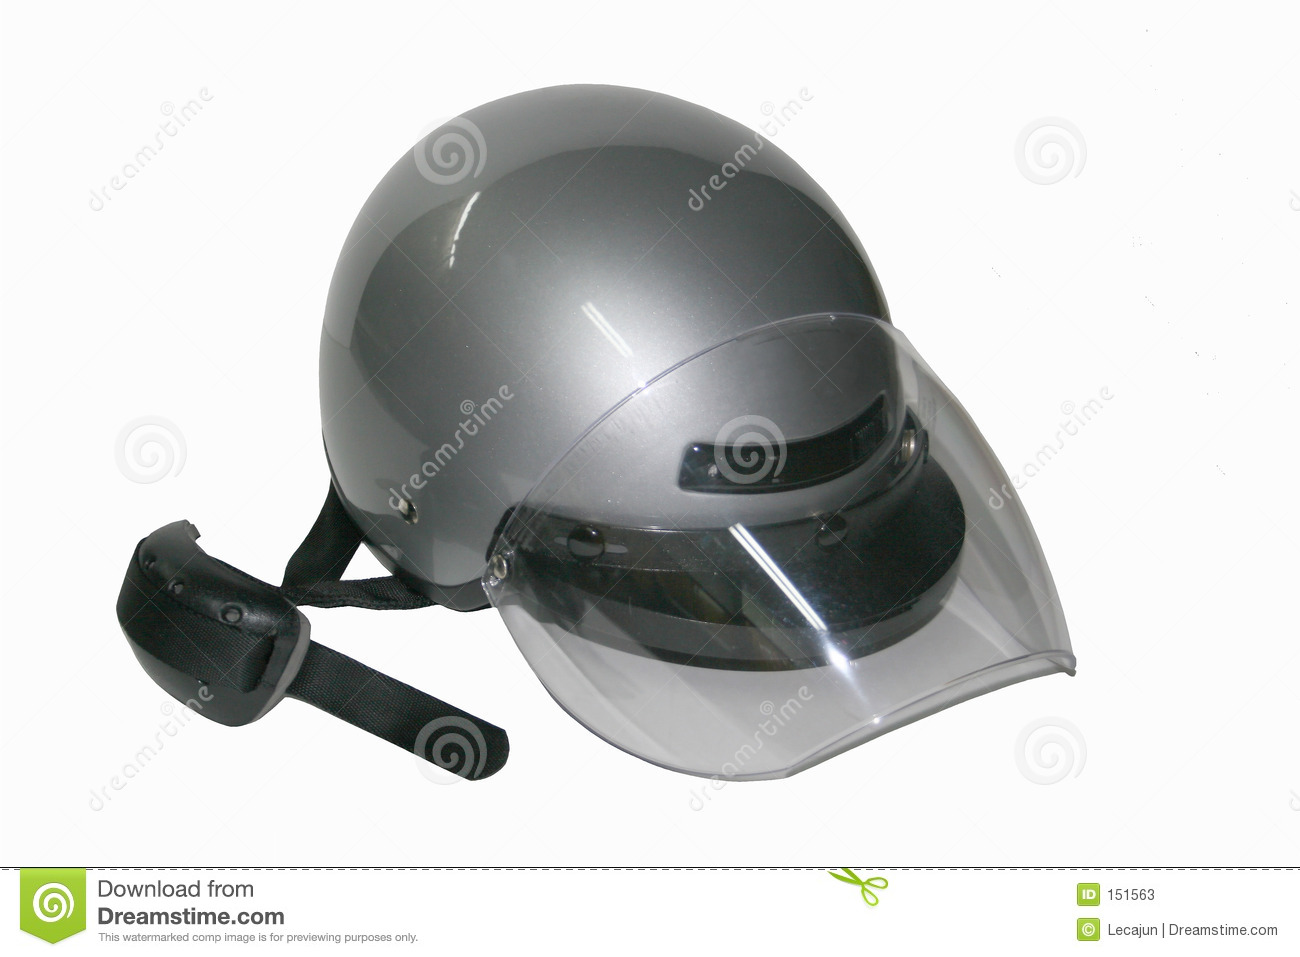 Cycle helmet 3